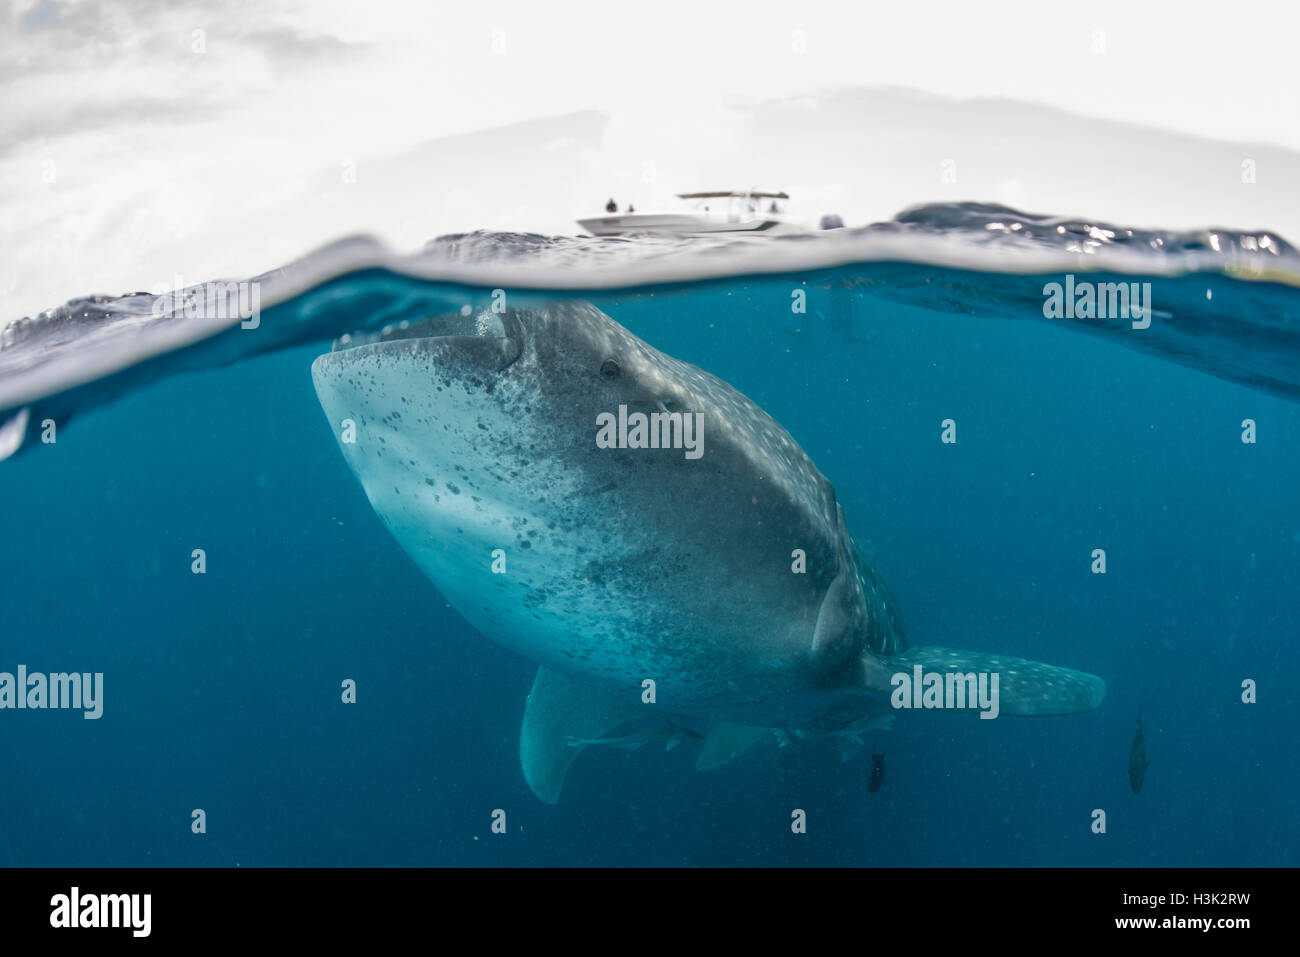 Whale shark (Rhincodon Typus) swimming near surface of water, Contoy Island, Mexico Stock Photo